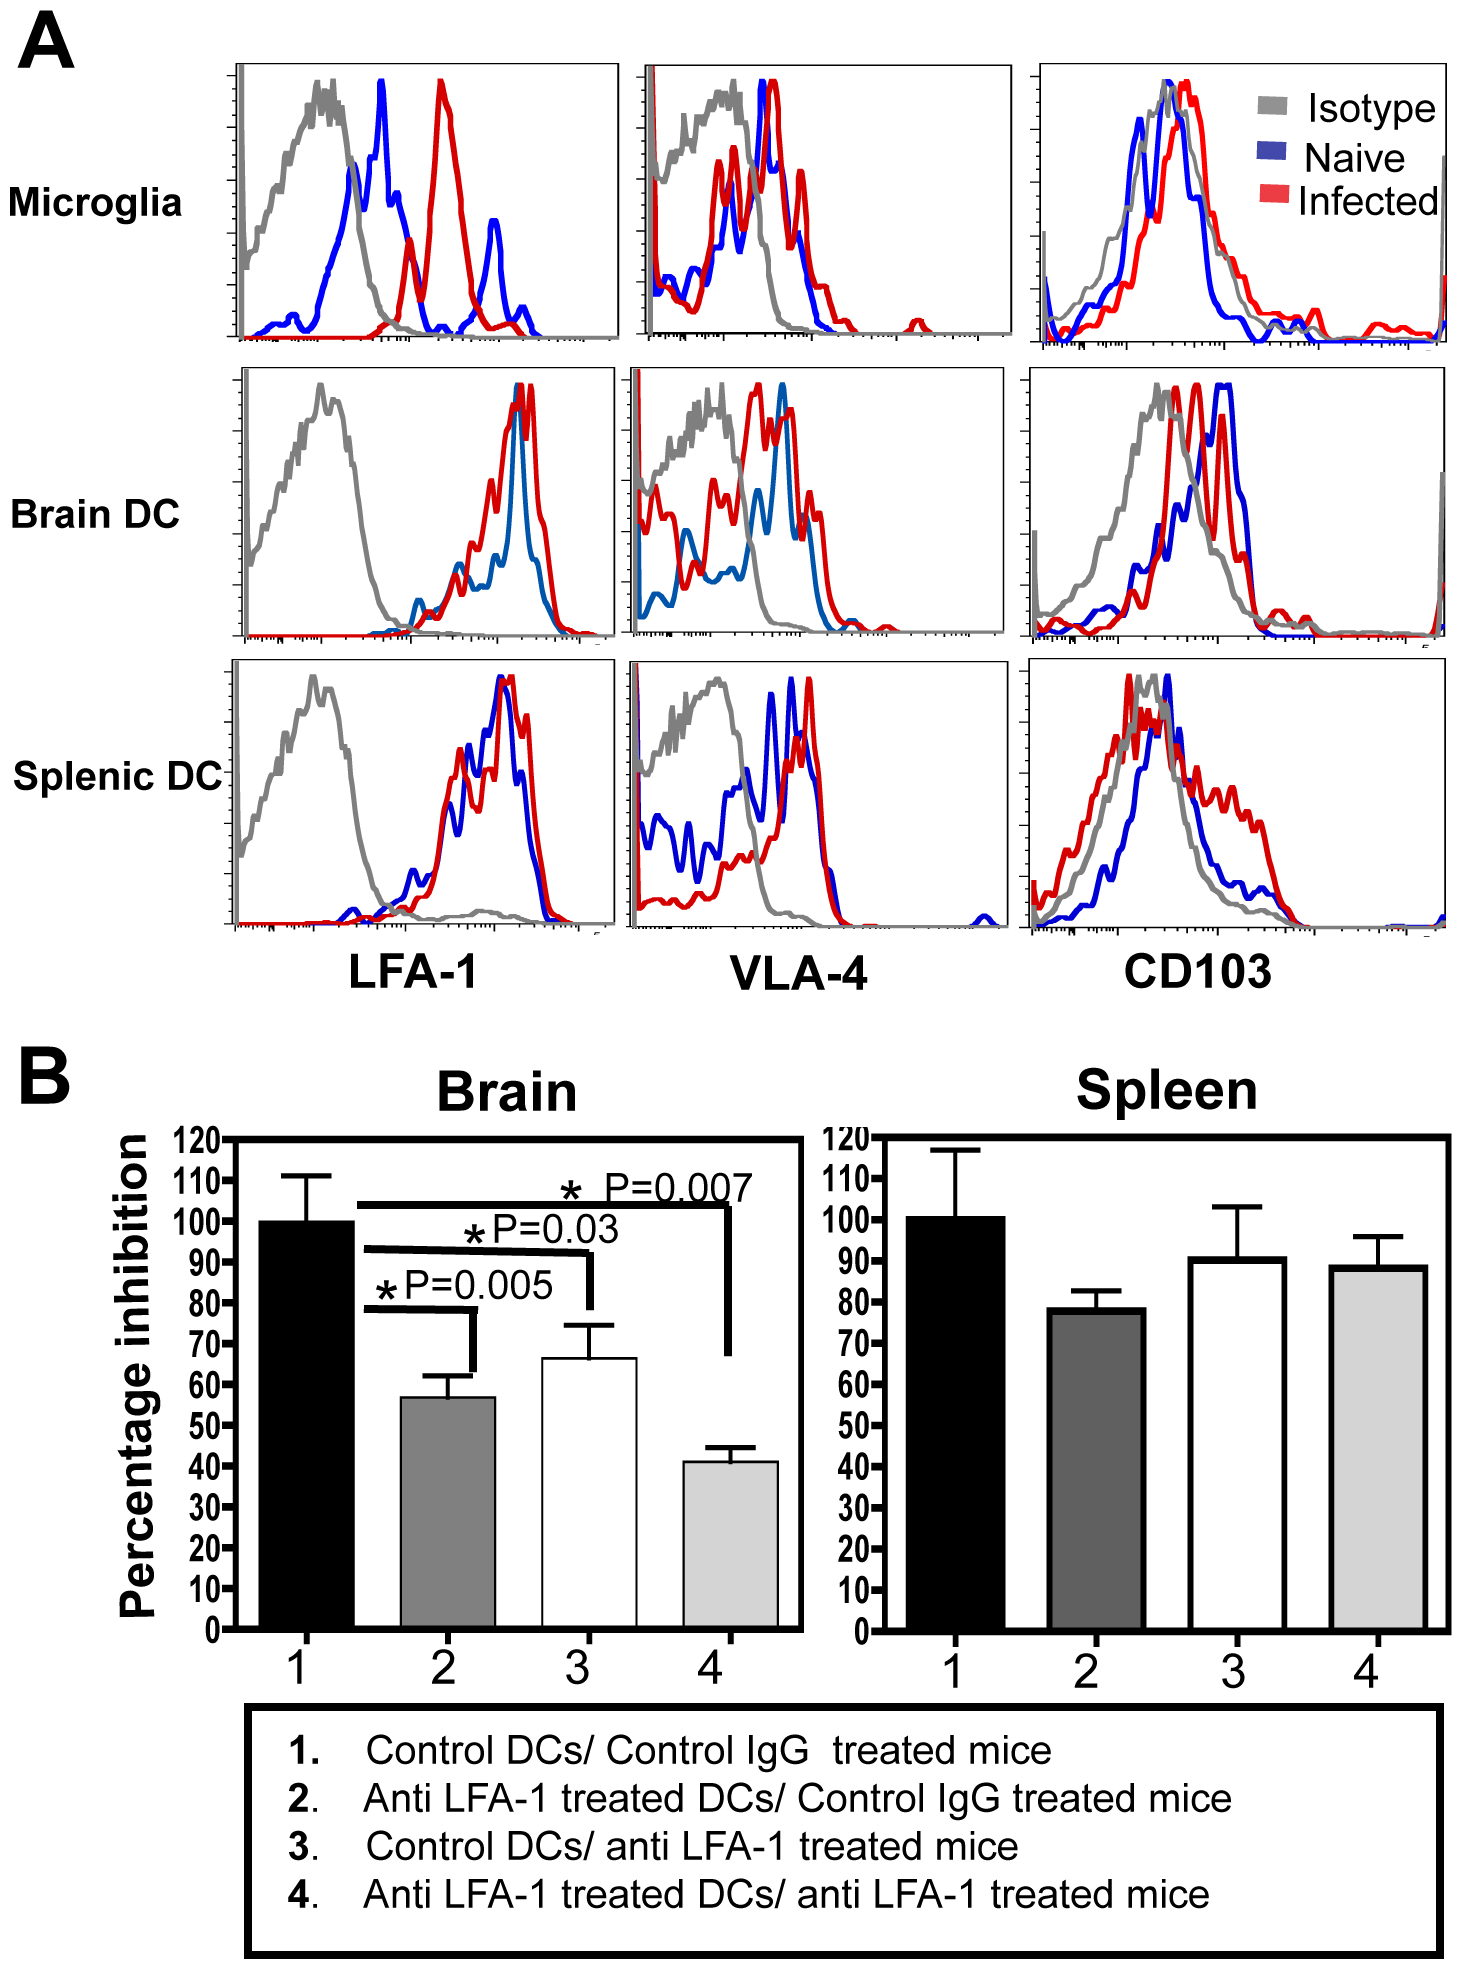 Migration of DCs into the brain is LFA-1 dependent.